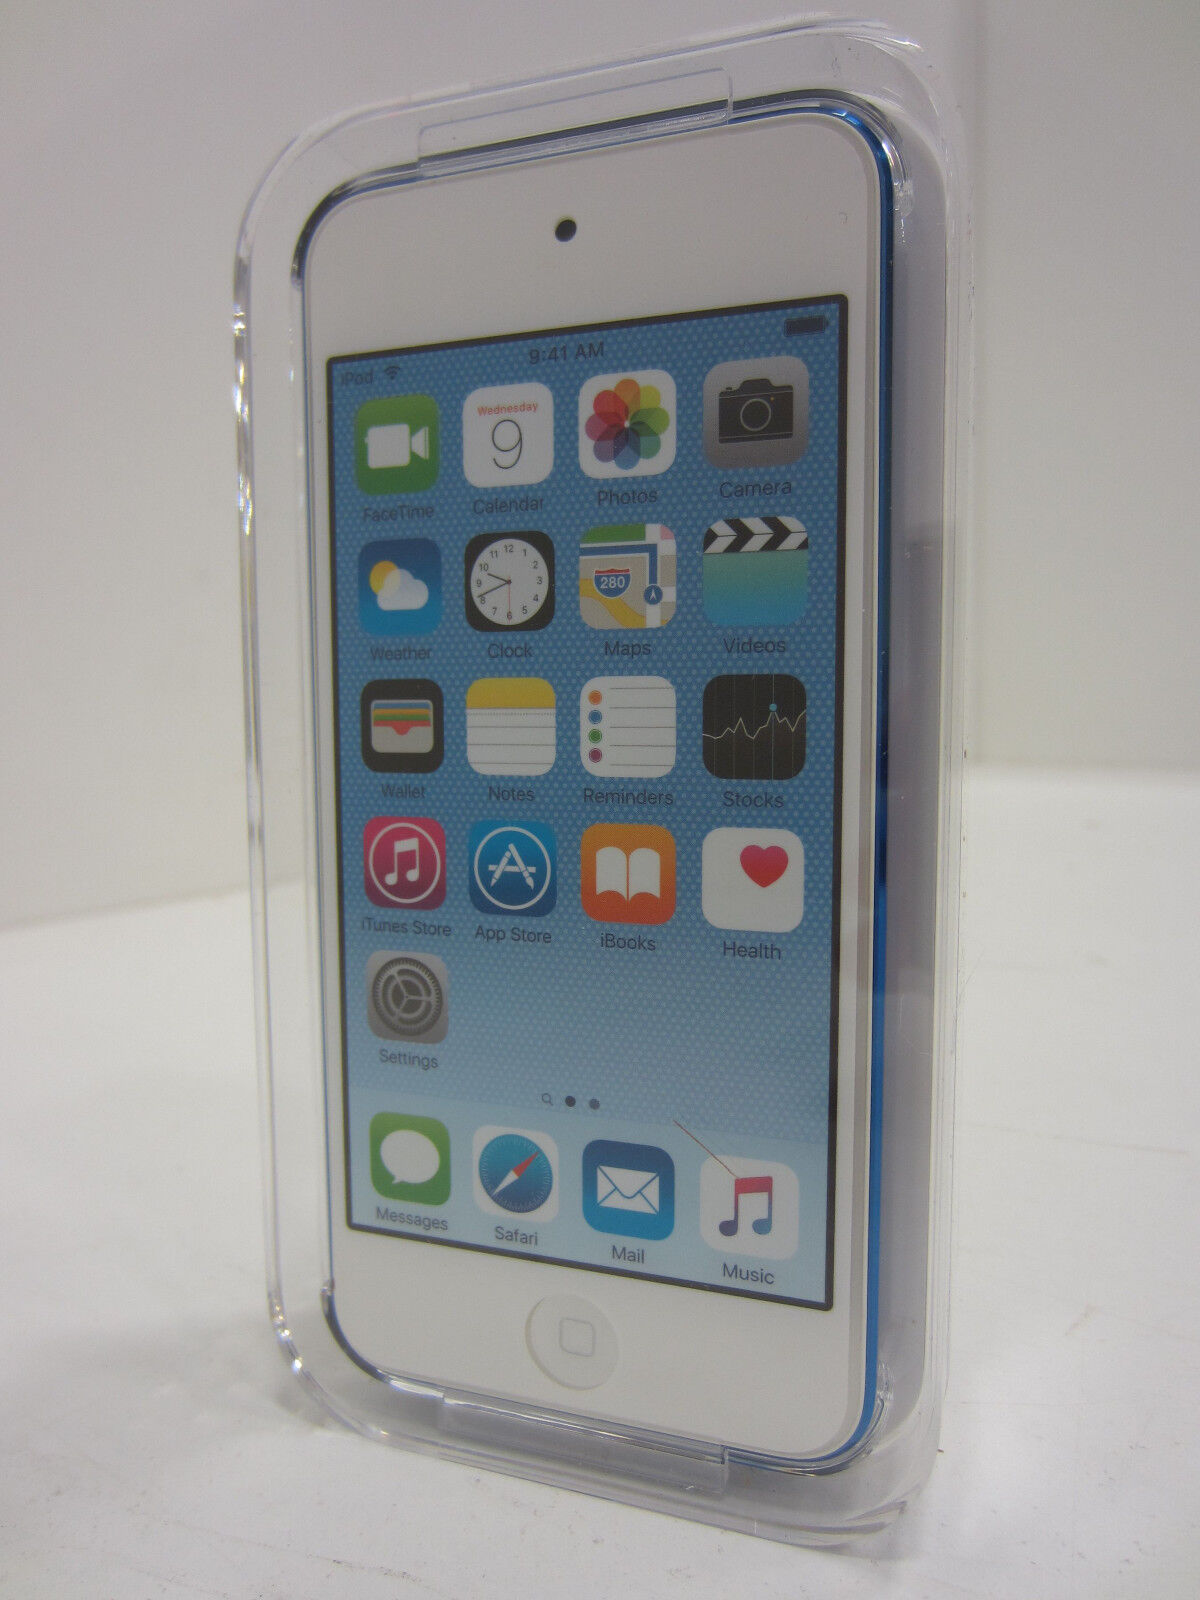 Ipod Touch - Apple iPod Touch 6th Generation Blue (64 GB) - Brand New in Factory Sealed Box!